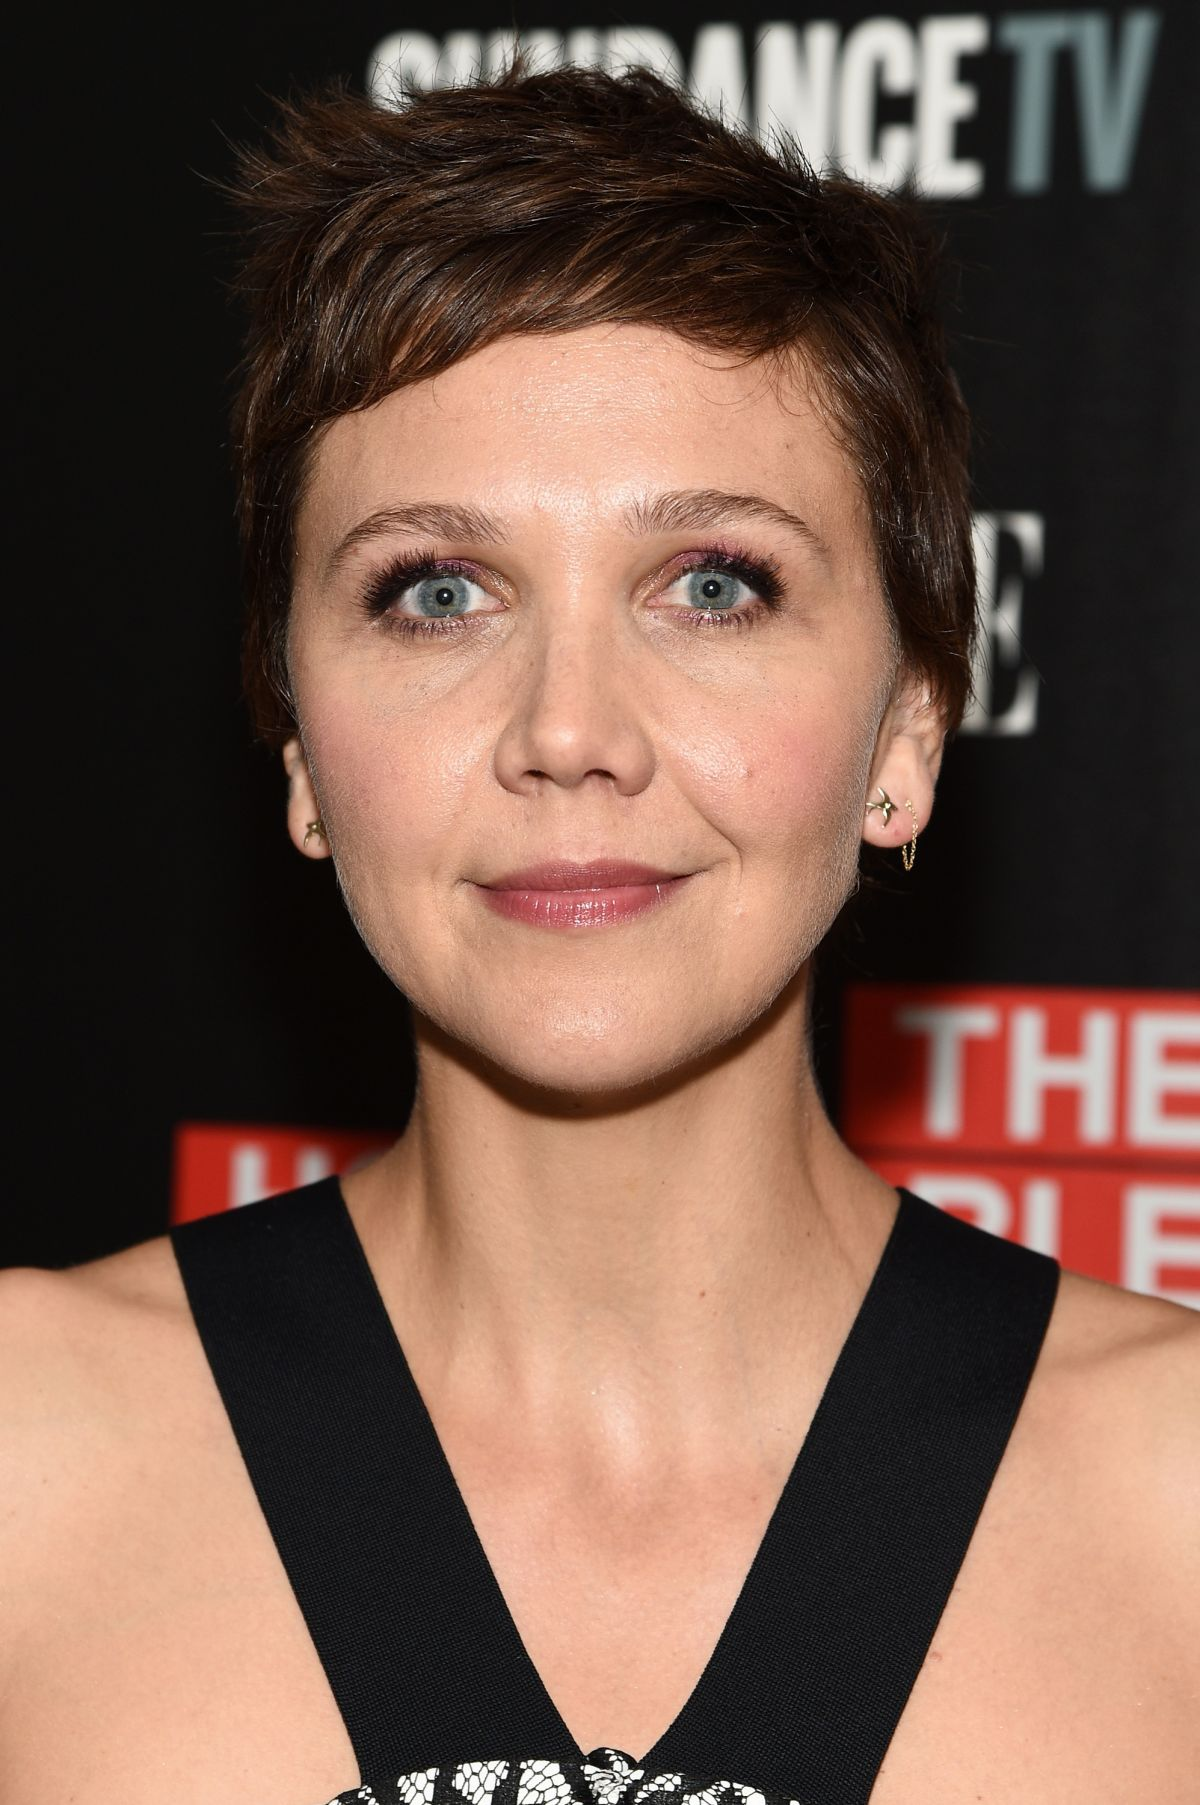 MAGGIE GYLLENHAAL at The Honourable Women Screening in New York